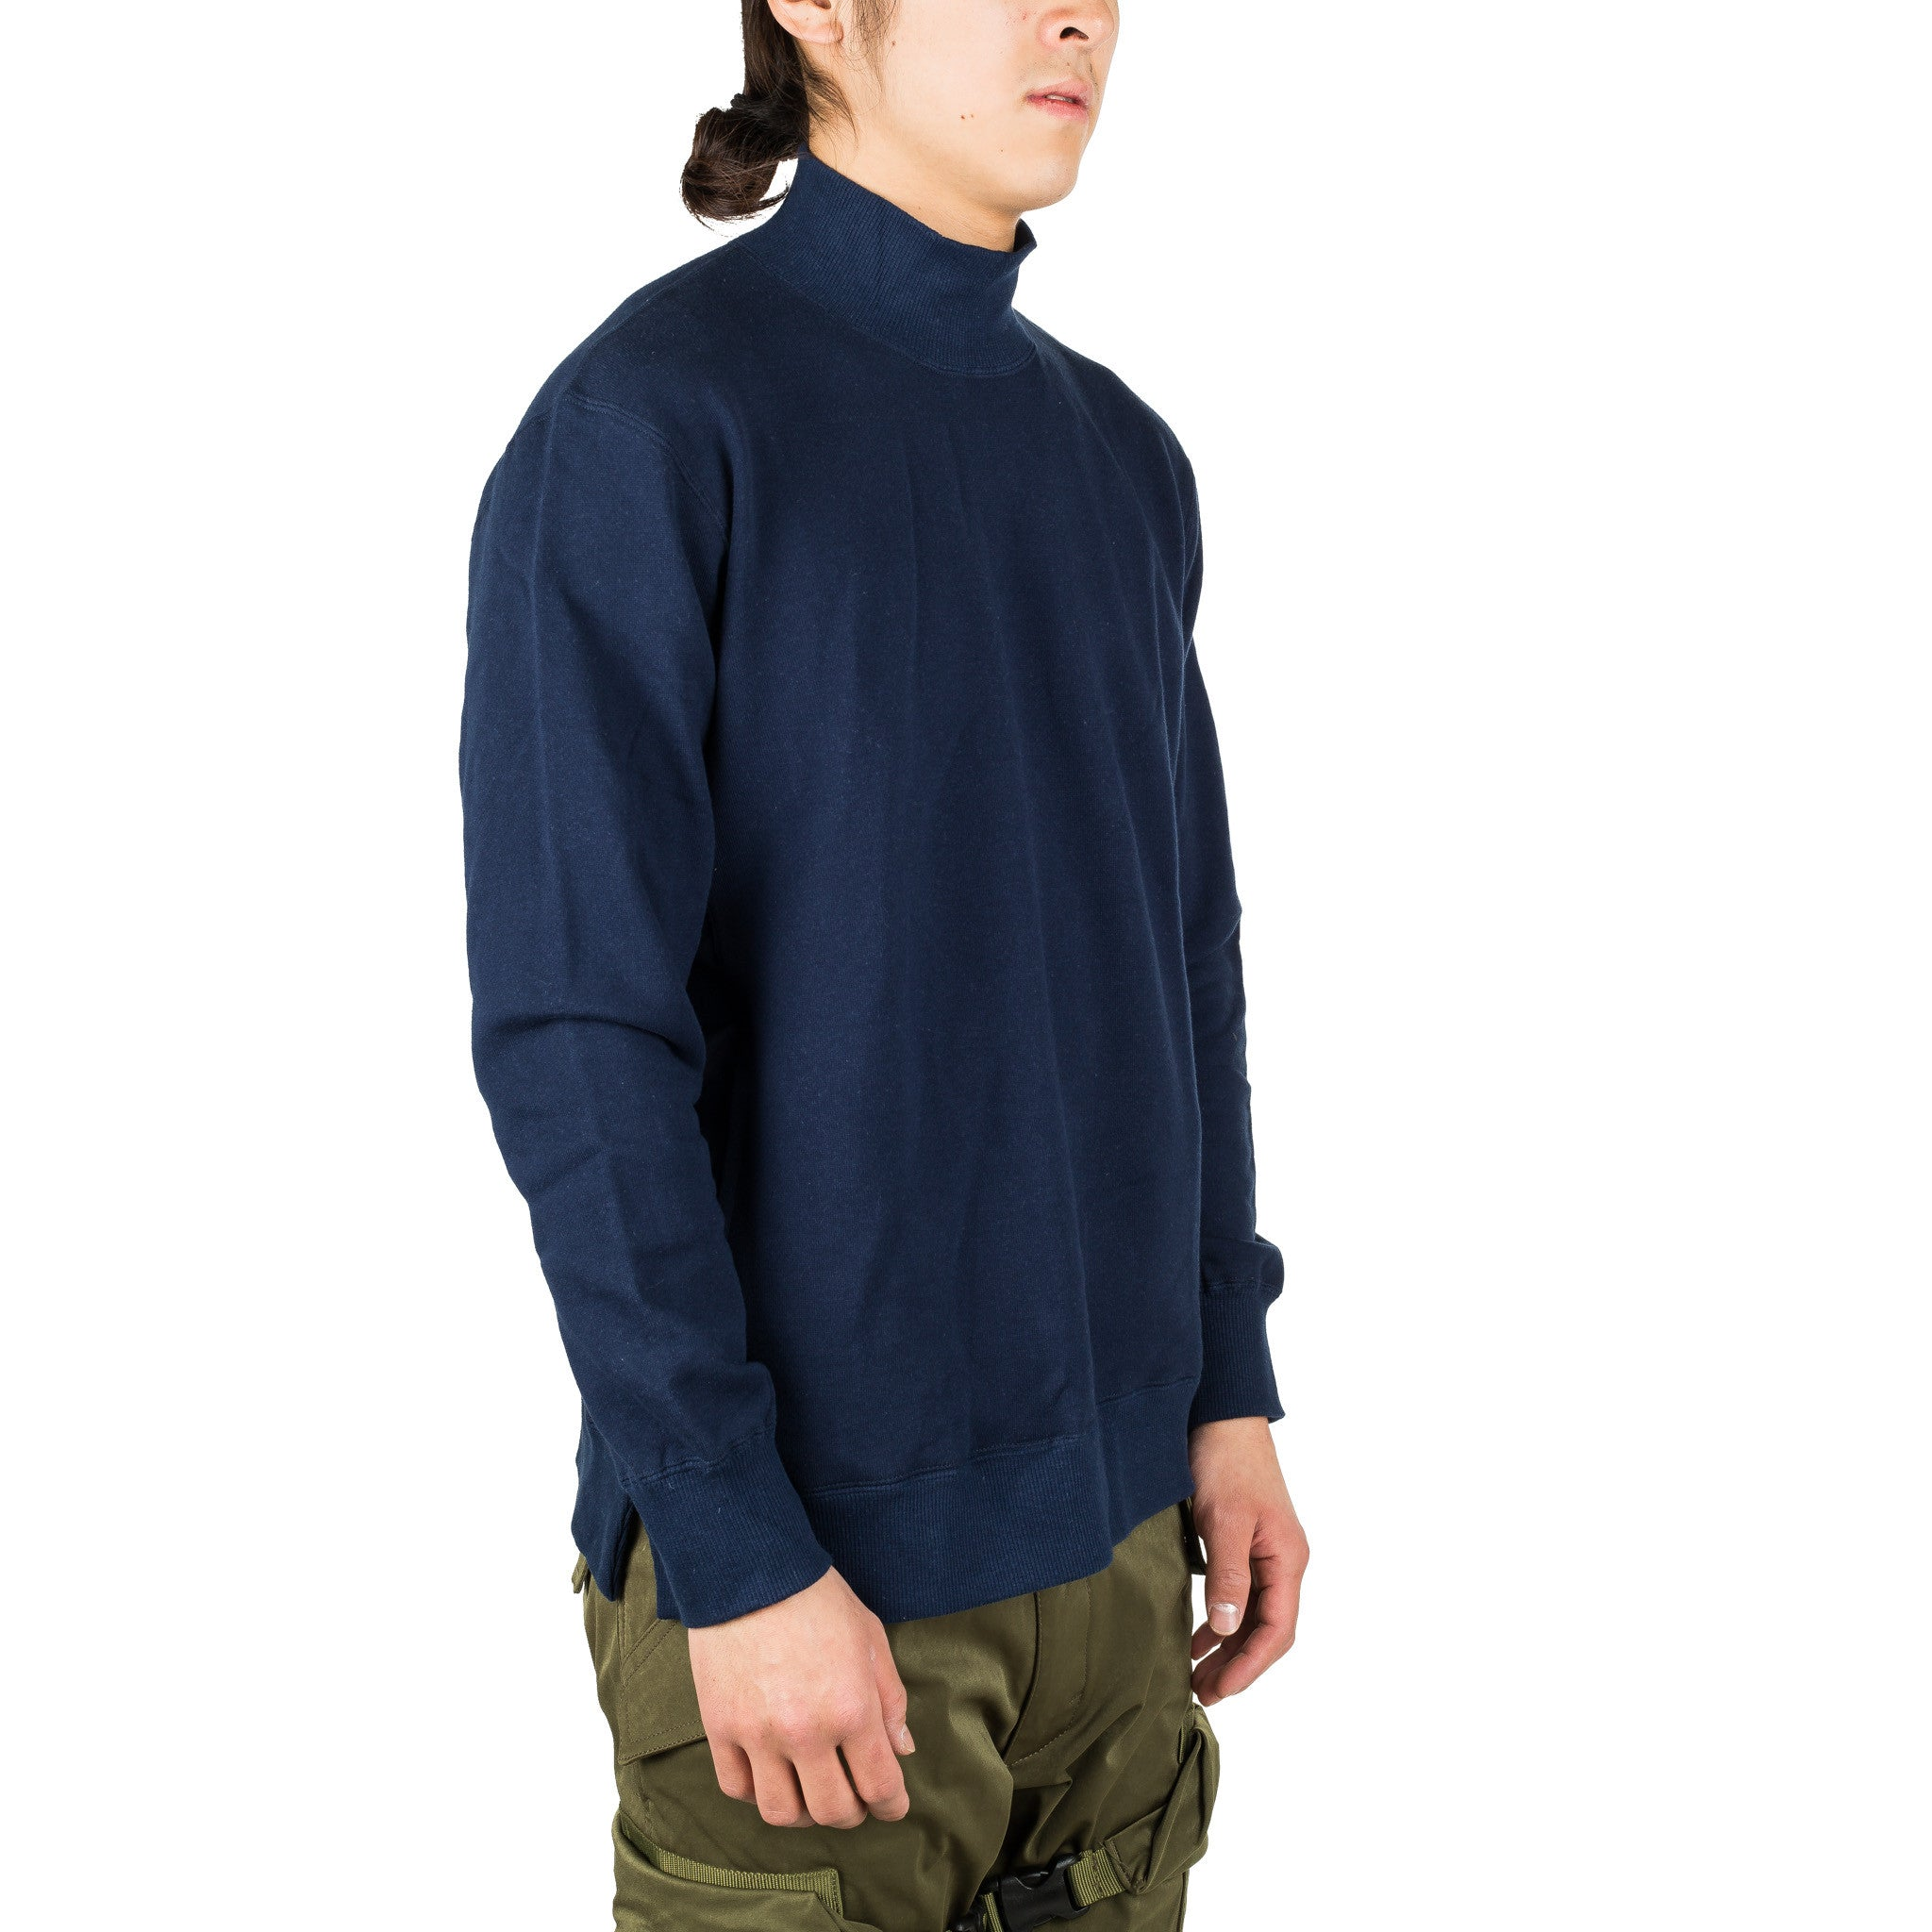 WL-C-15 Mock Sweat Shirt Navy